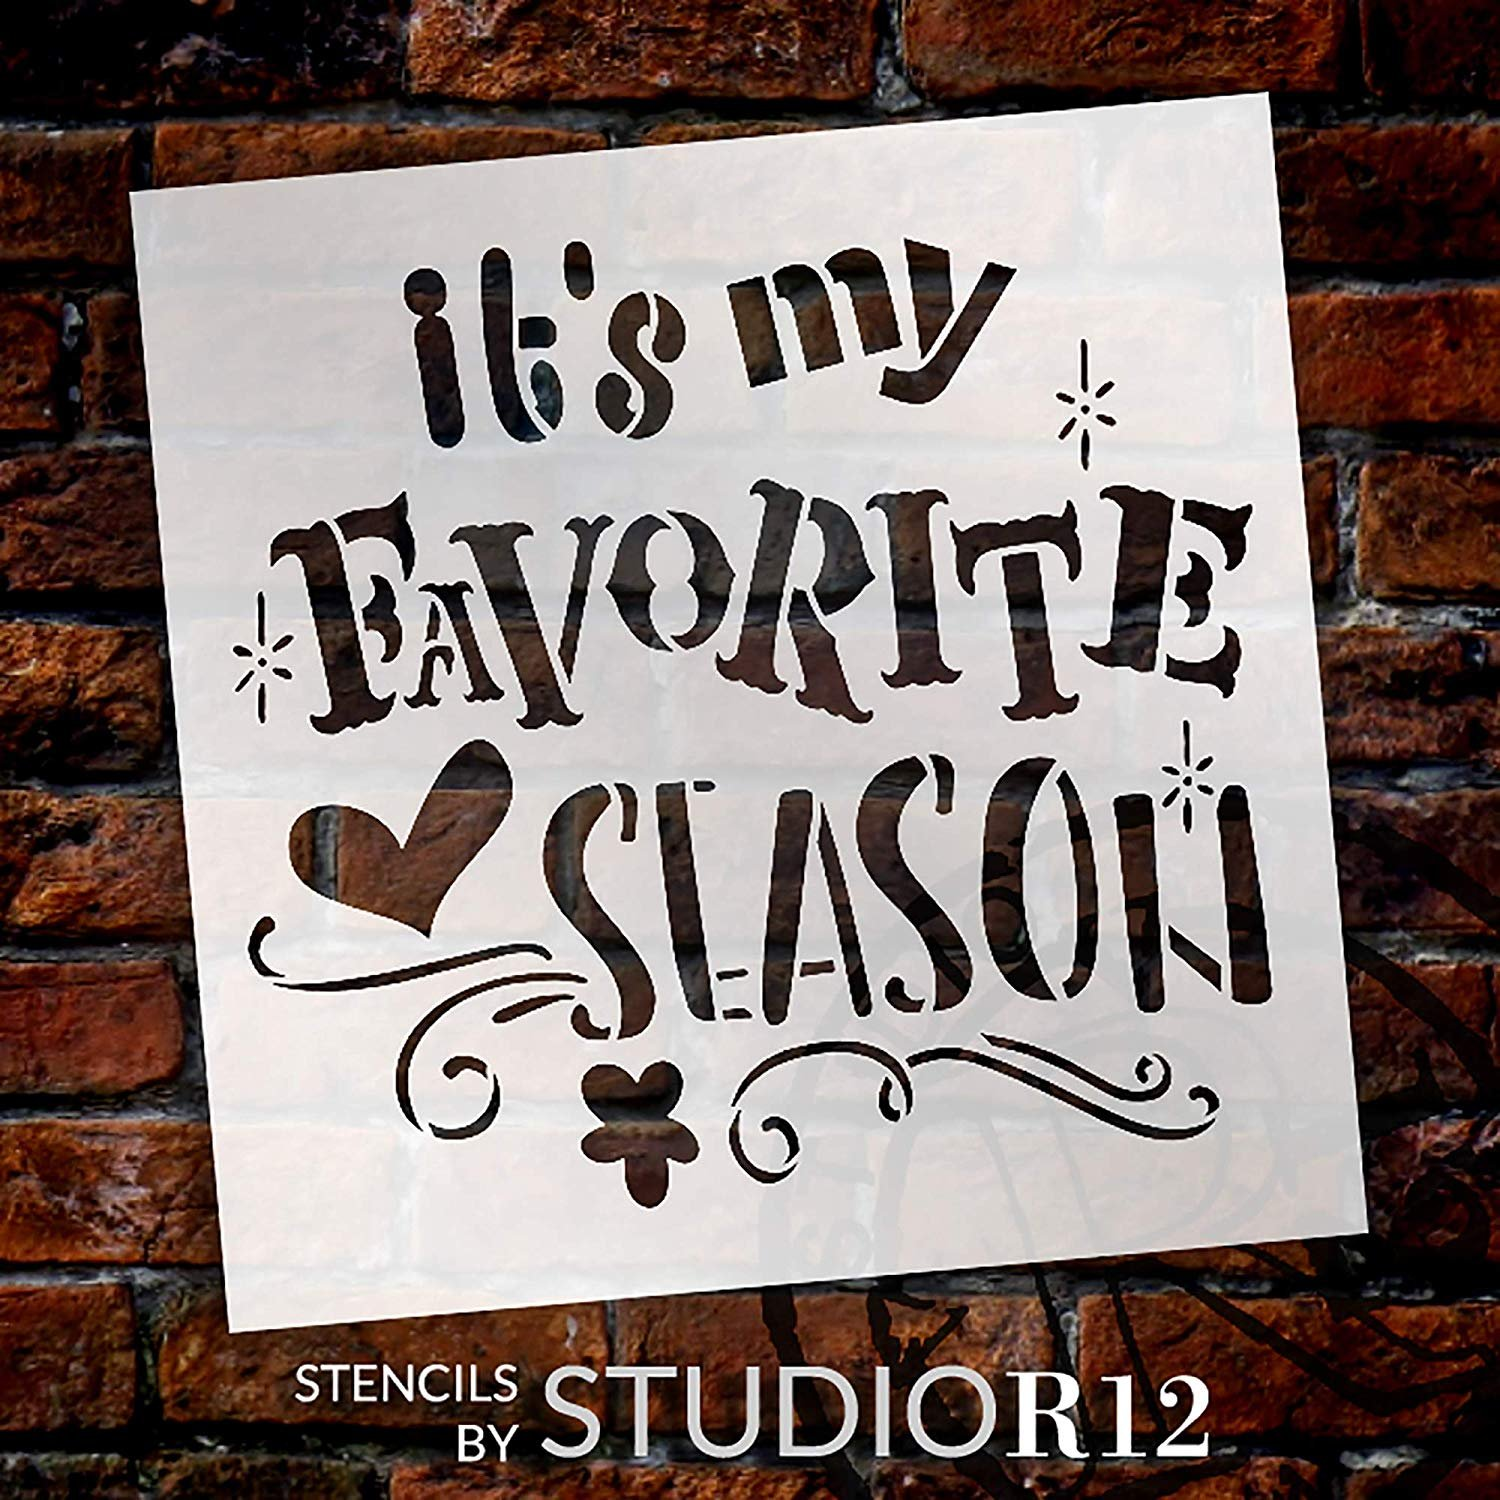 It's My Favorite Season Stencil with Heart & Swirls by StudioR12   DIY Seasonal Home Decor   Fun Embellished Word Art   Craft & Paint Wood Signs   Reusable Mylar Template   Select Size